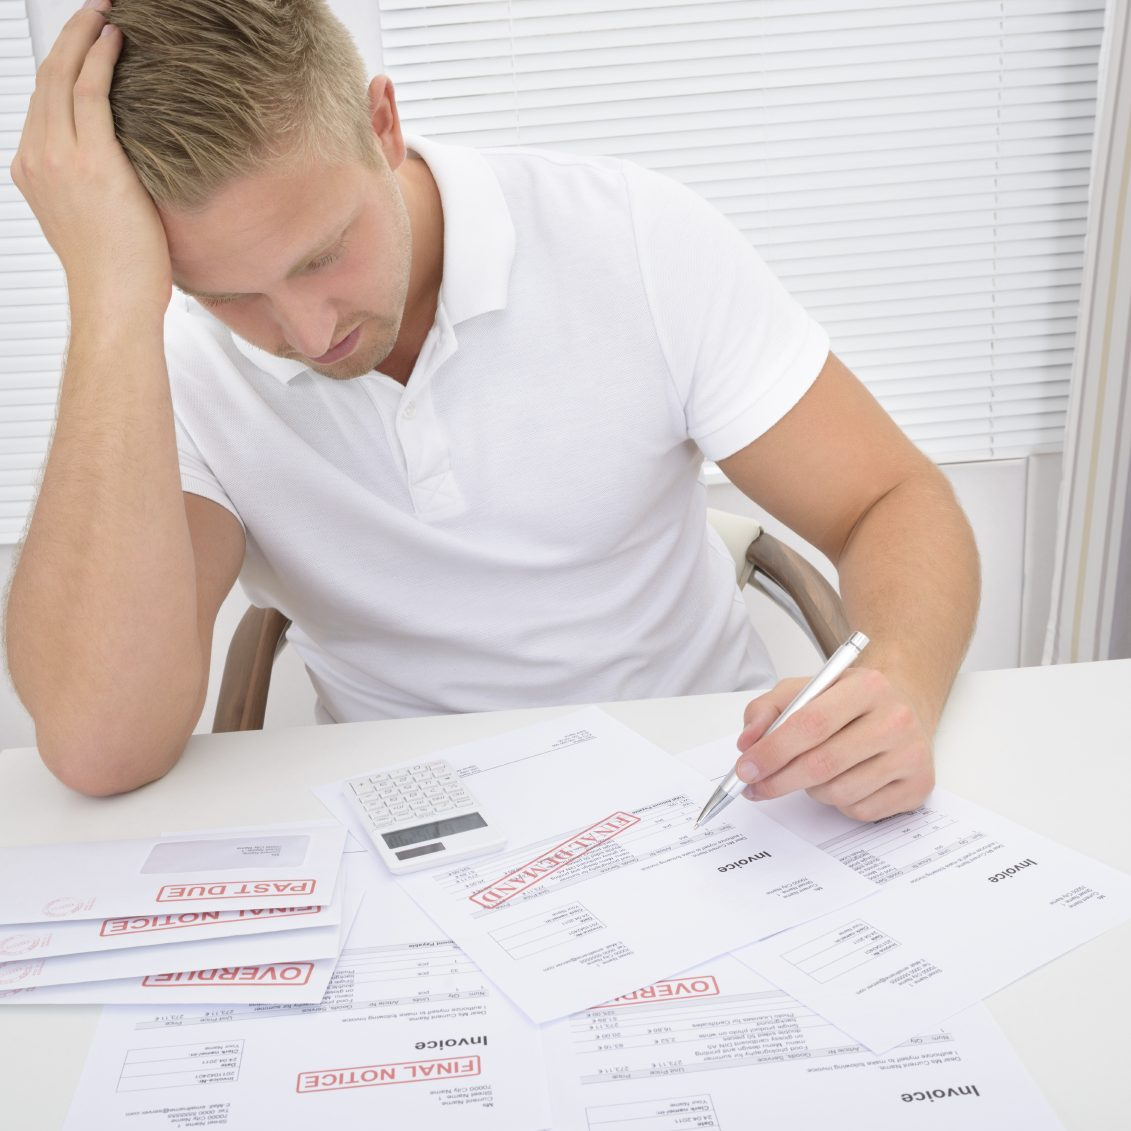 Portrait Of A Worried Man Calculating Unpaid Bills. Documents and stamps were created by photographer